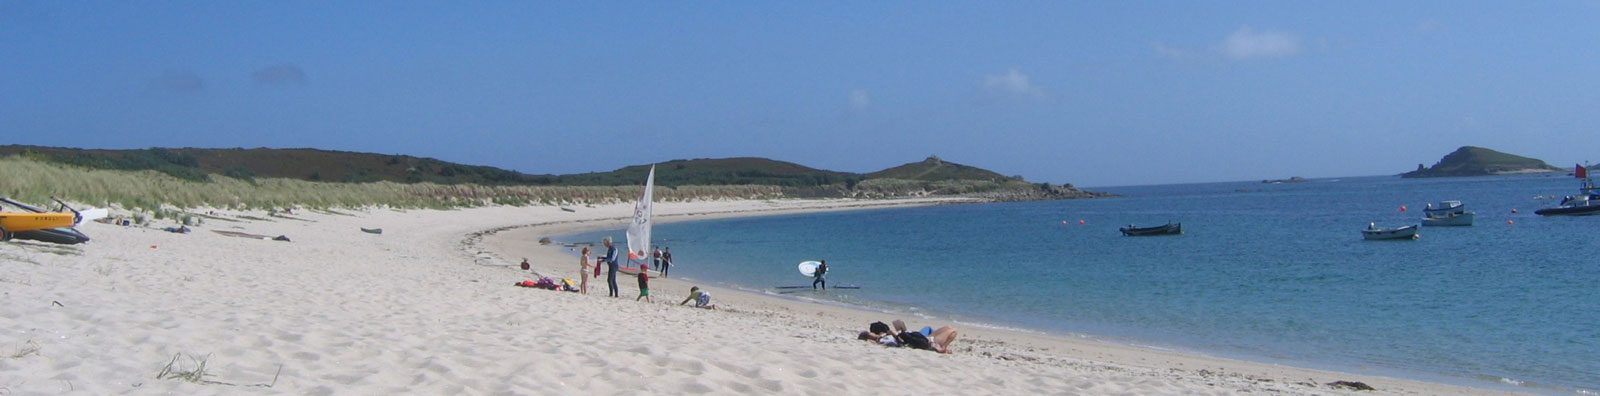 resien Scilly inseln